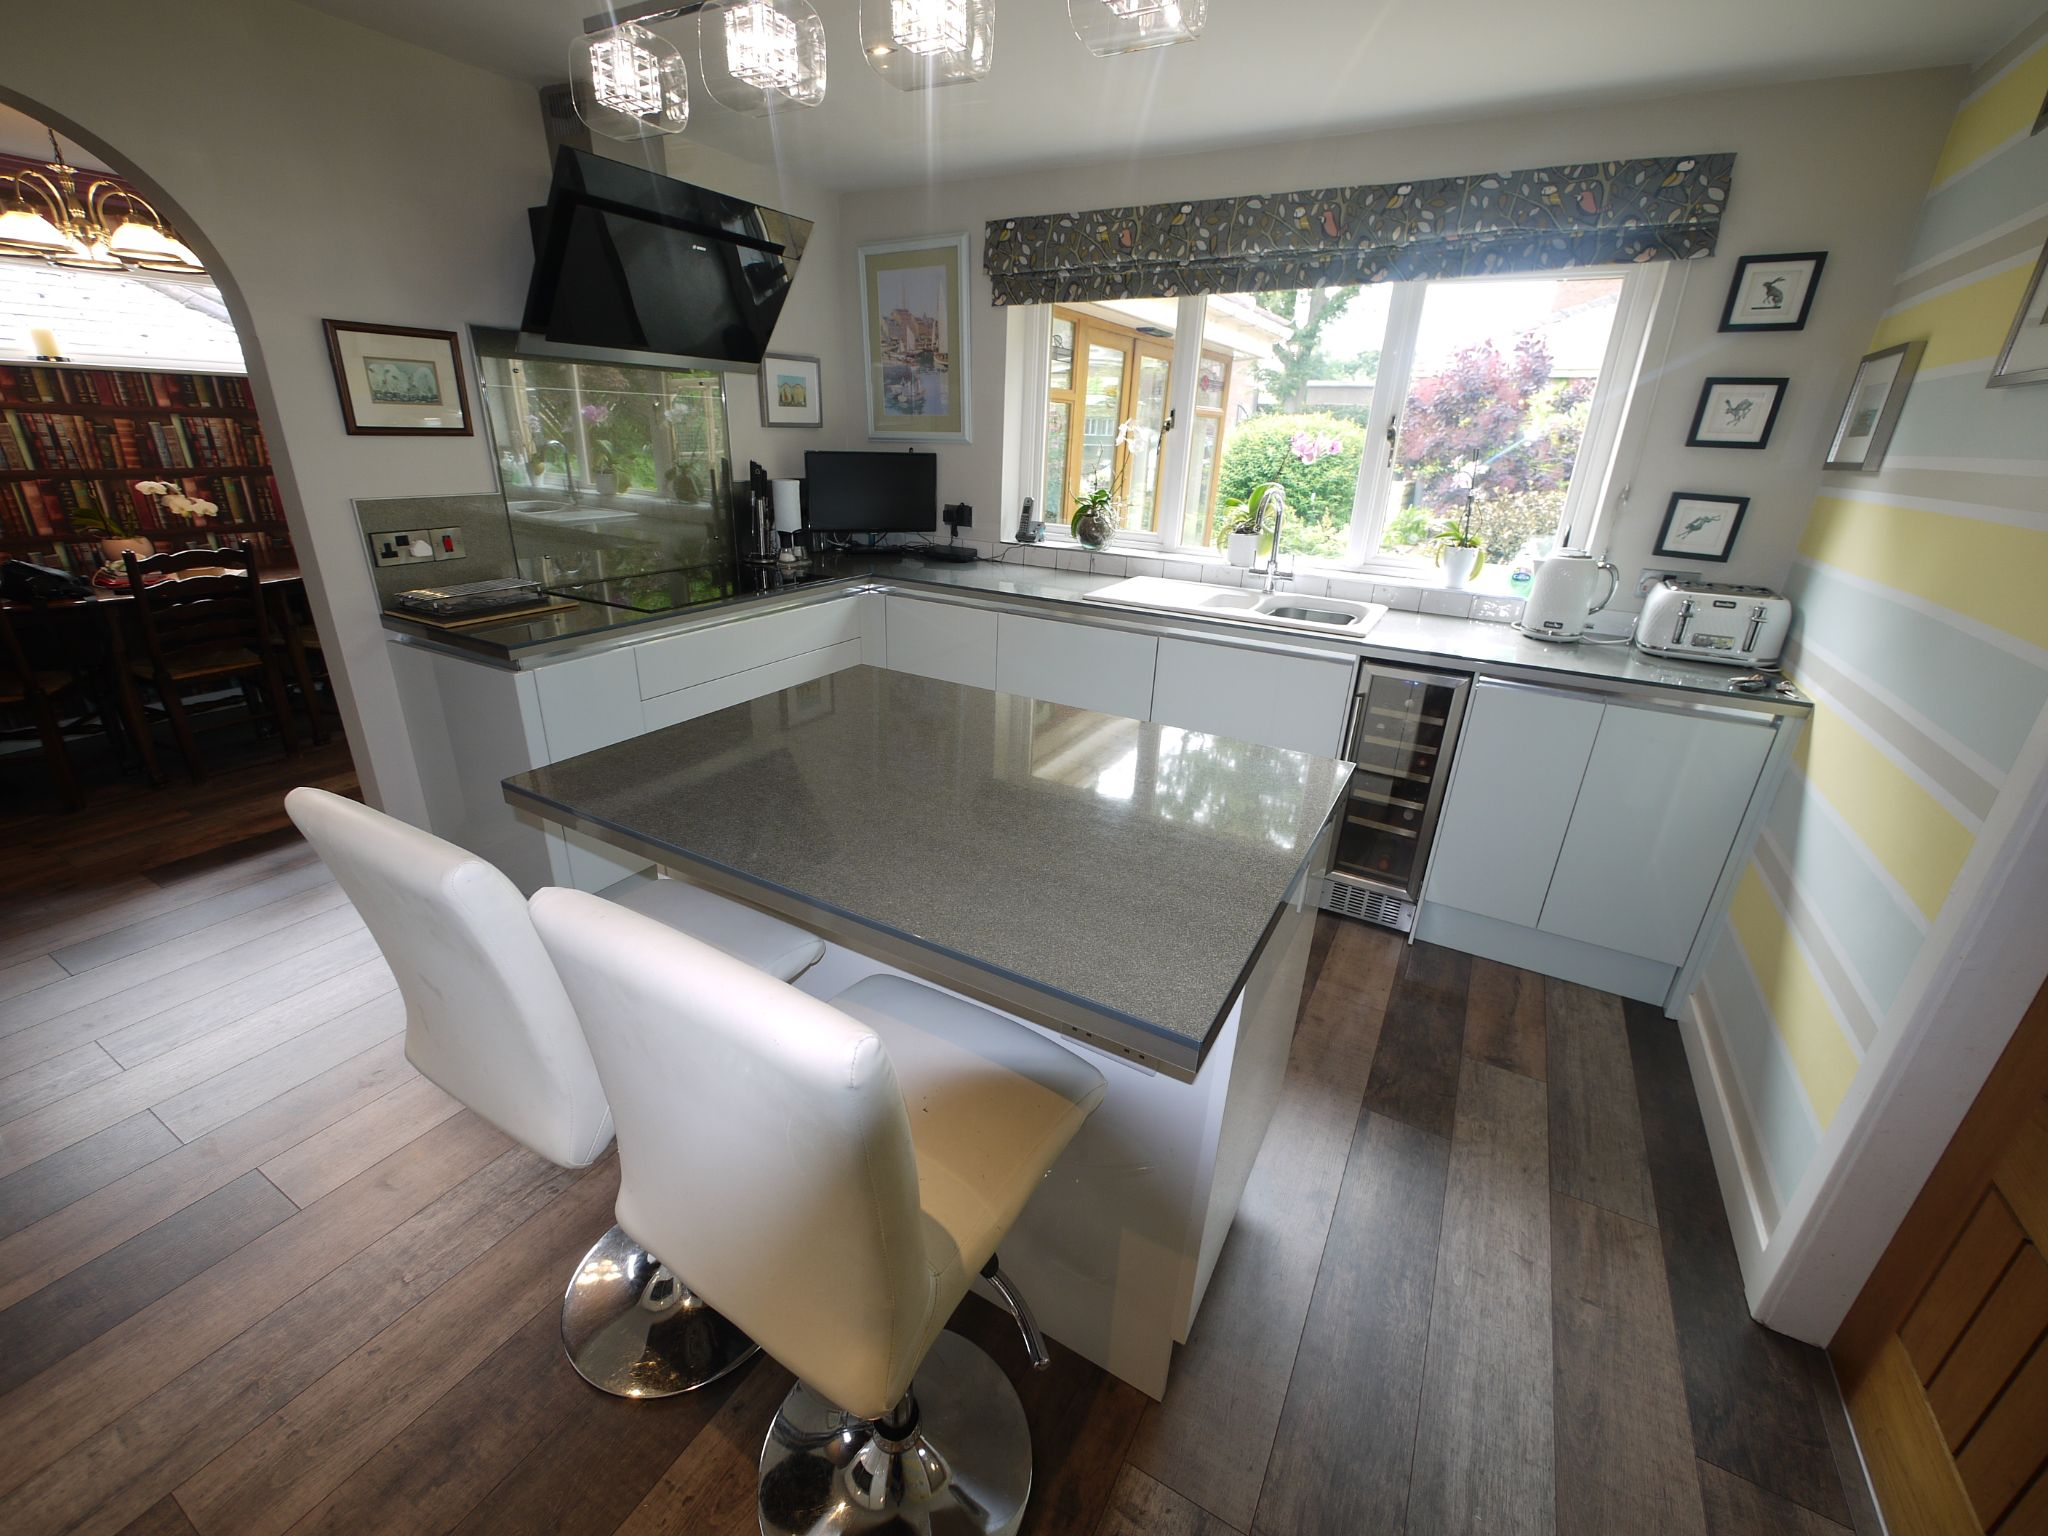 4 bedroom detached house For Sale in Brighouse - Kitchen.